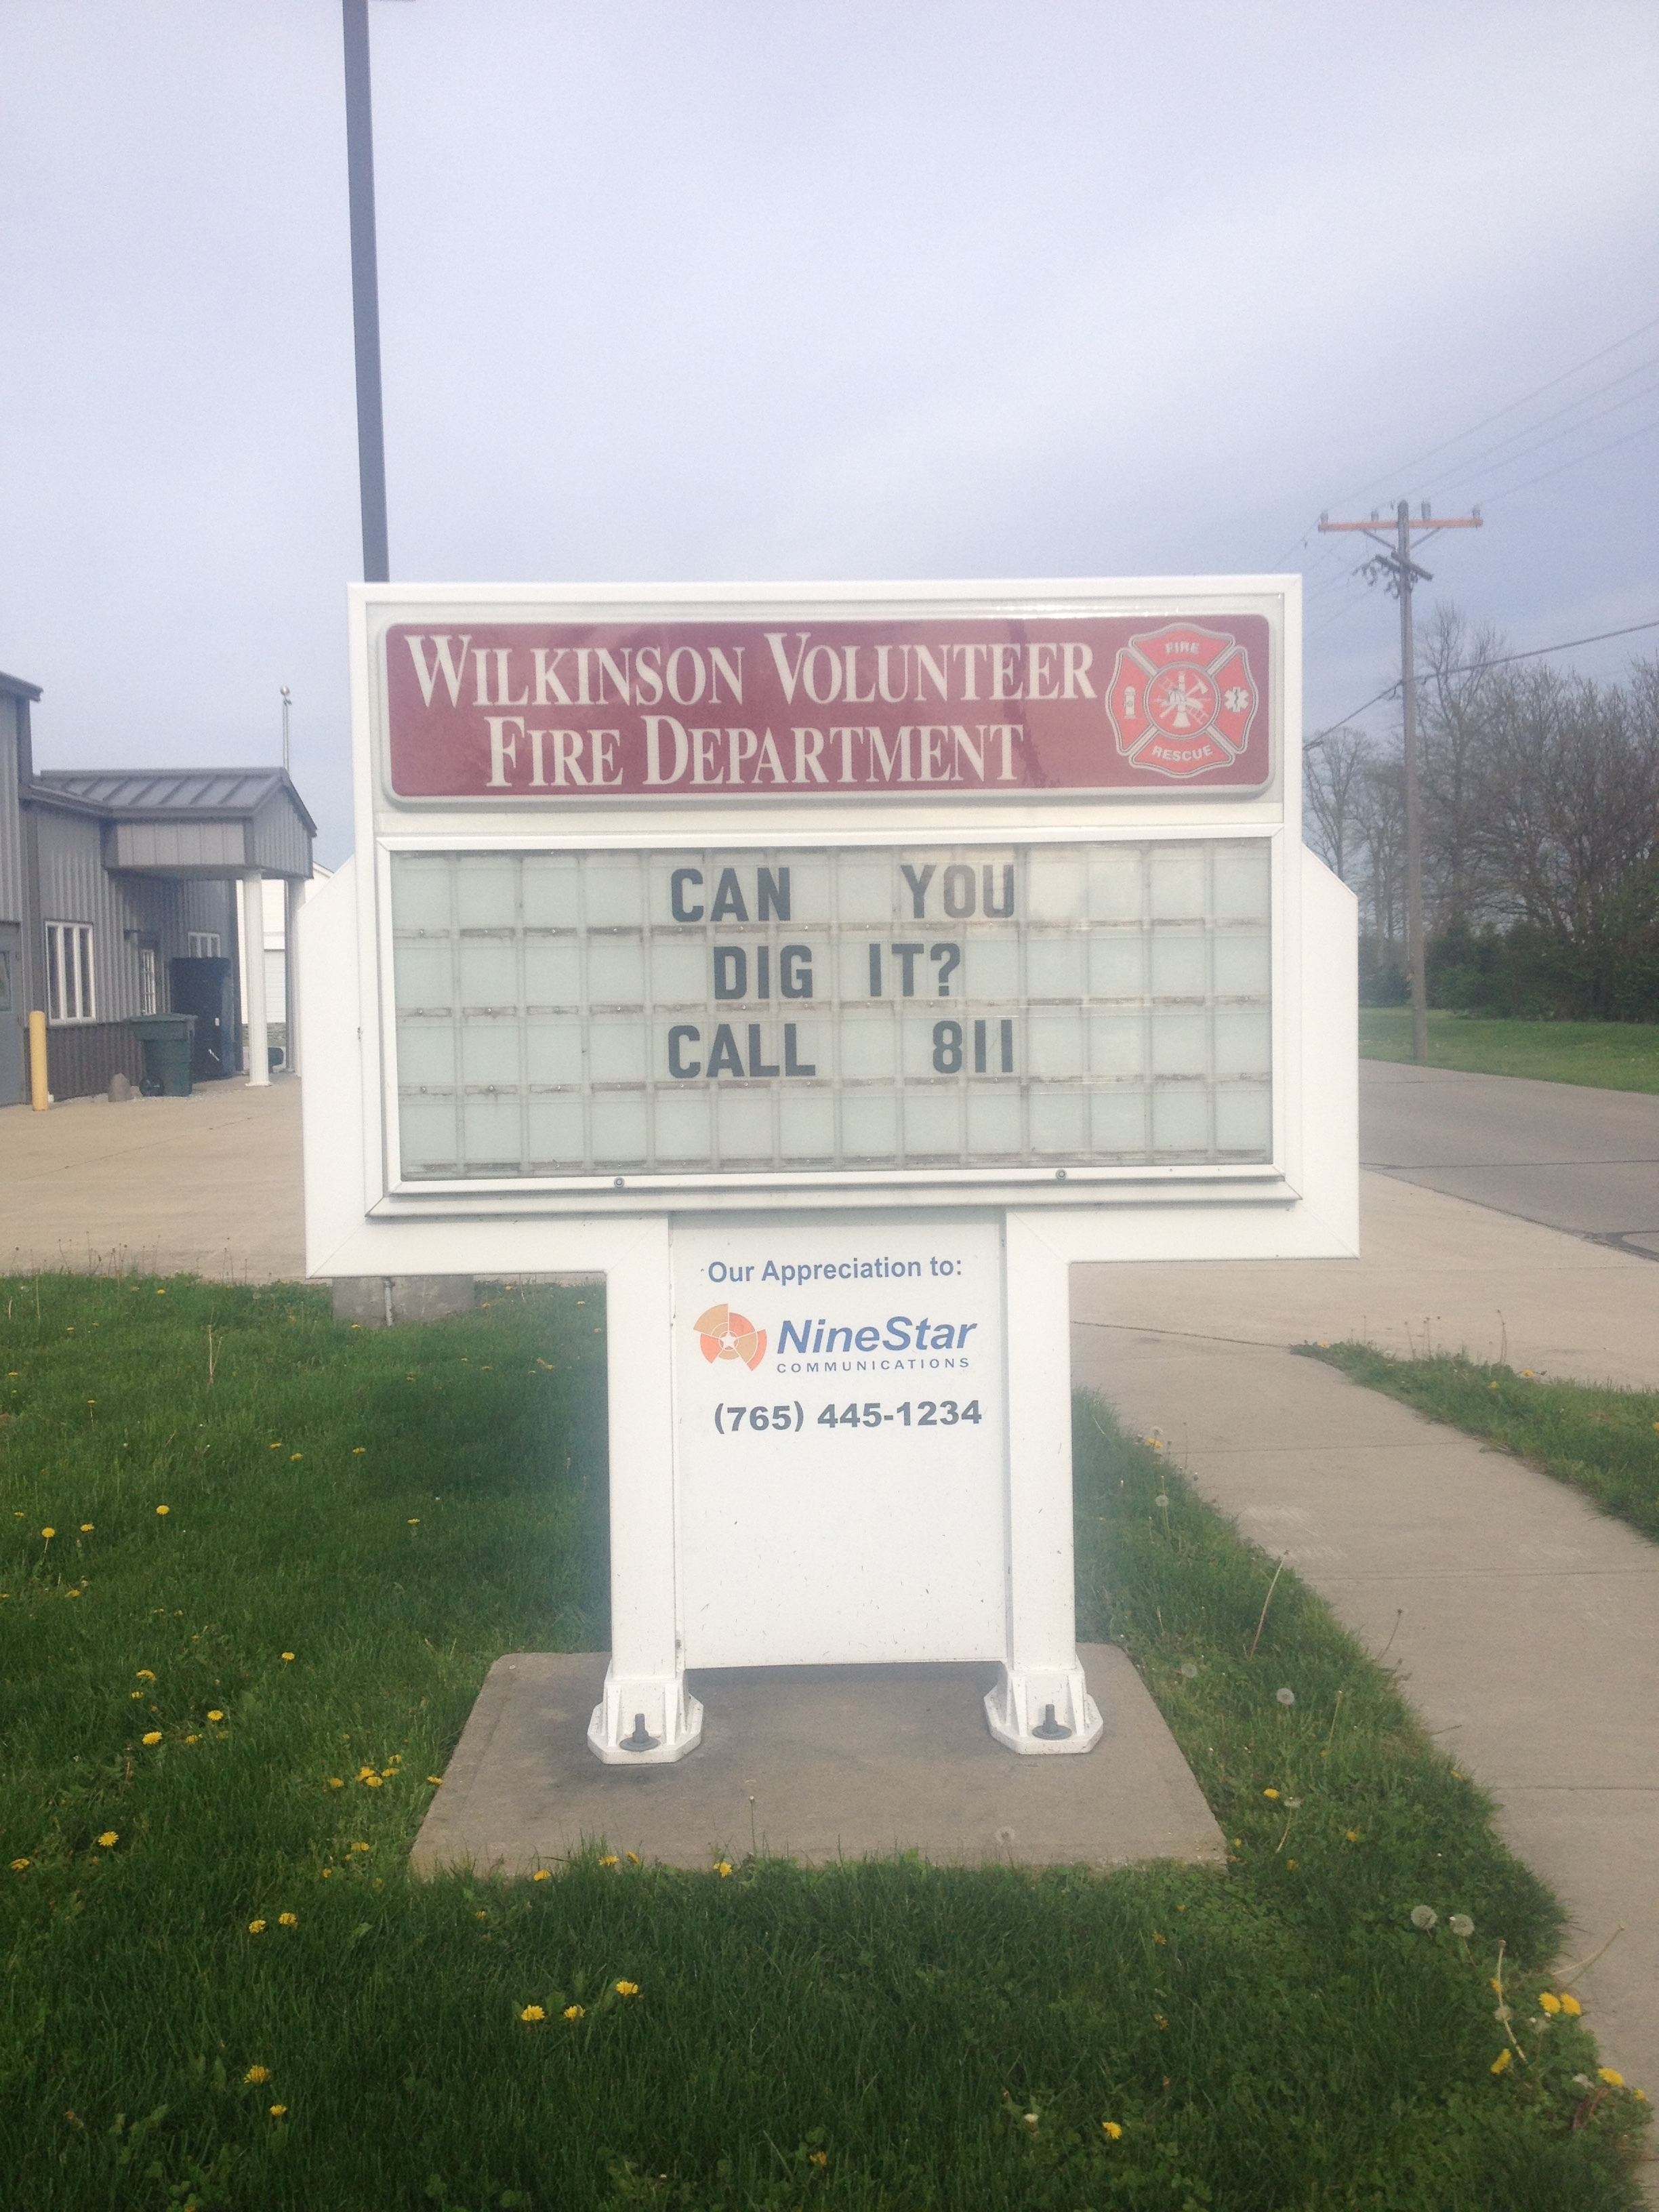 Wilkinson Volunteer Fire Department